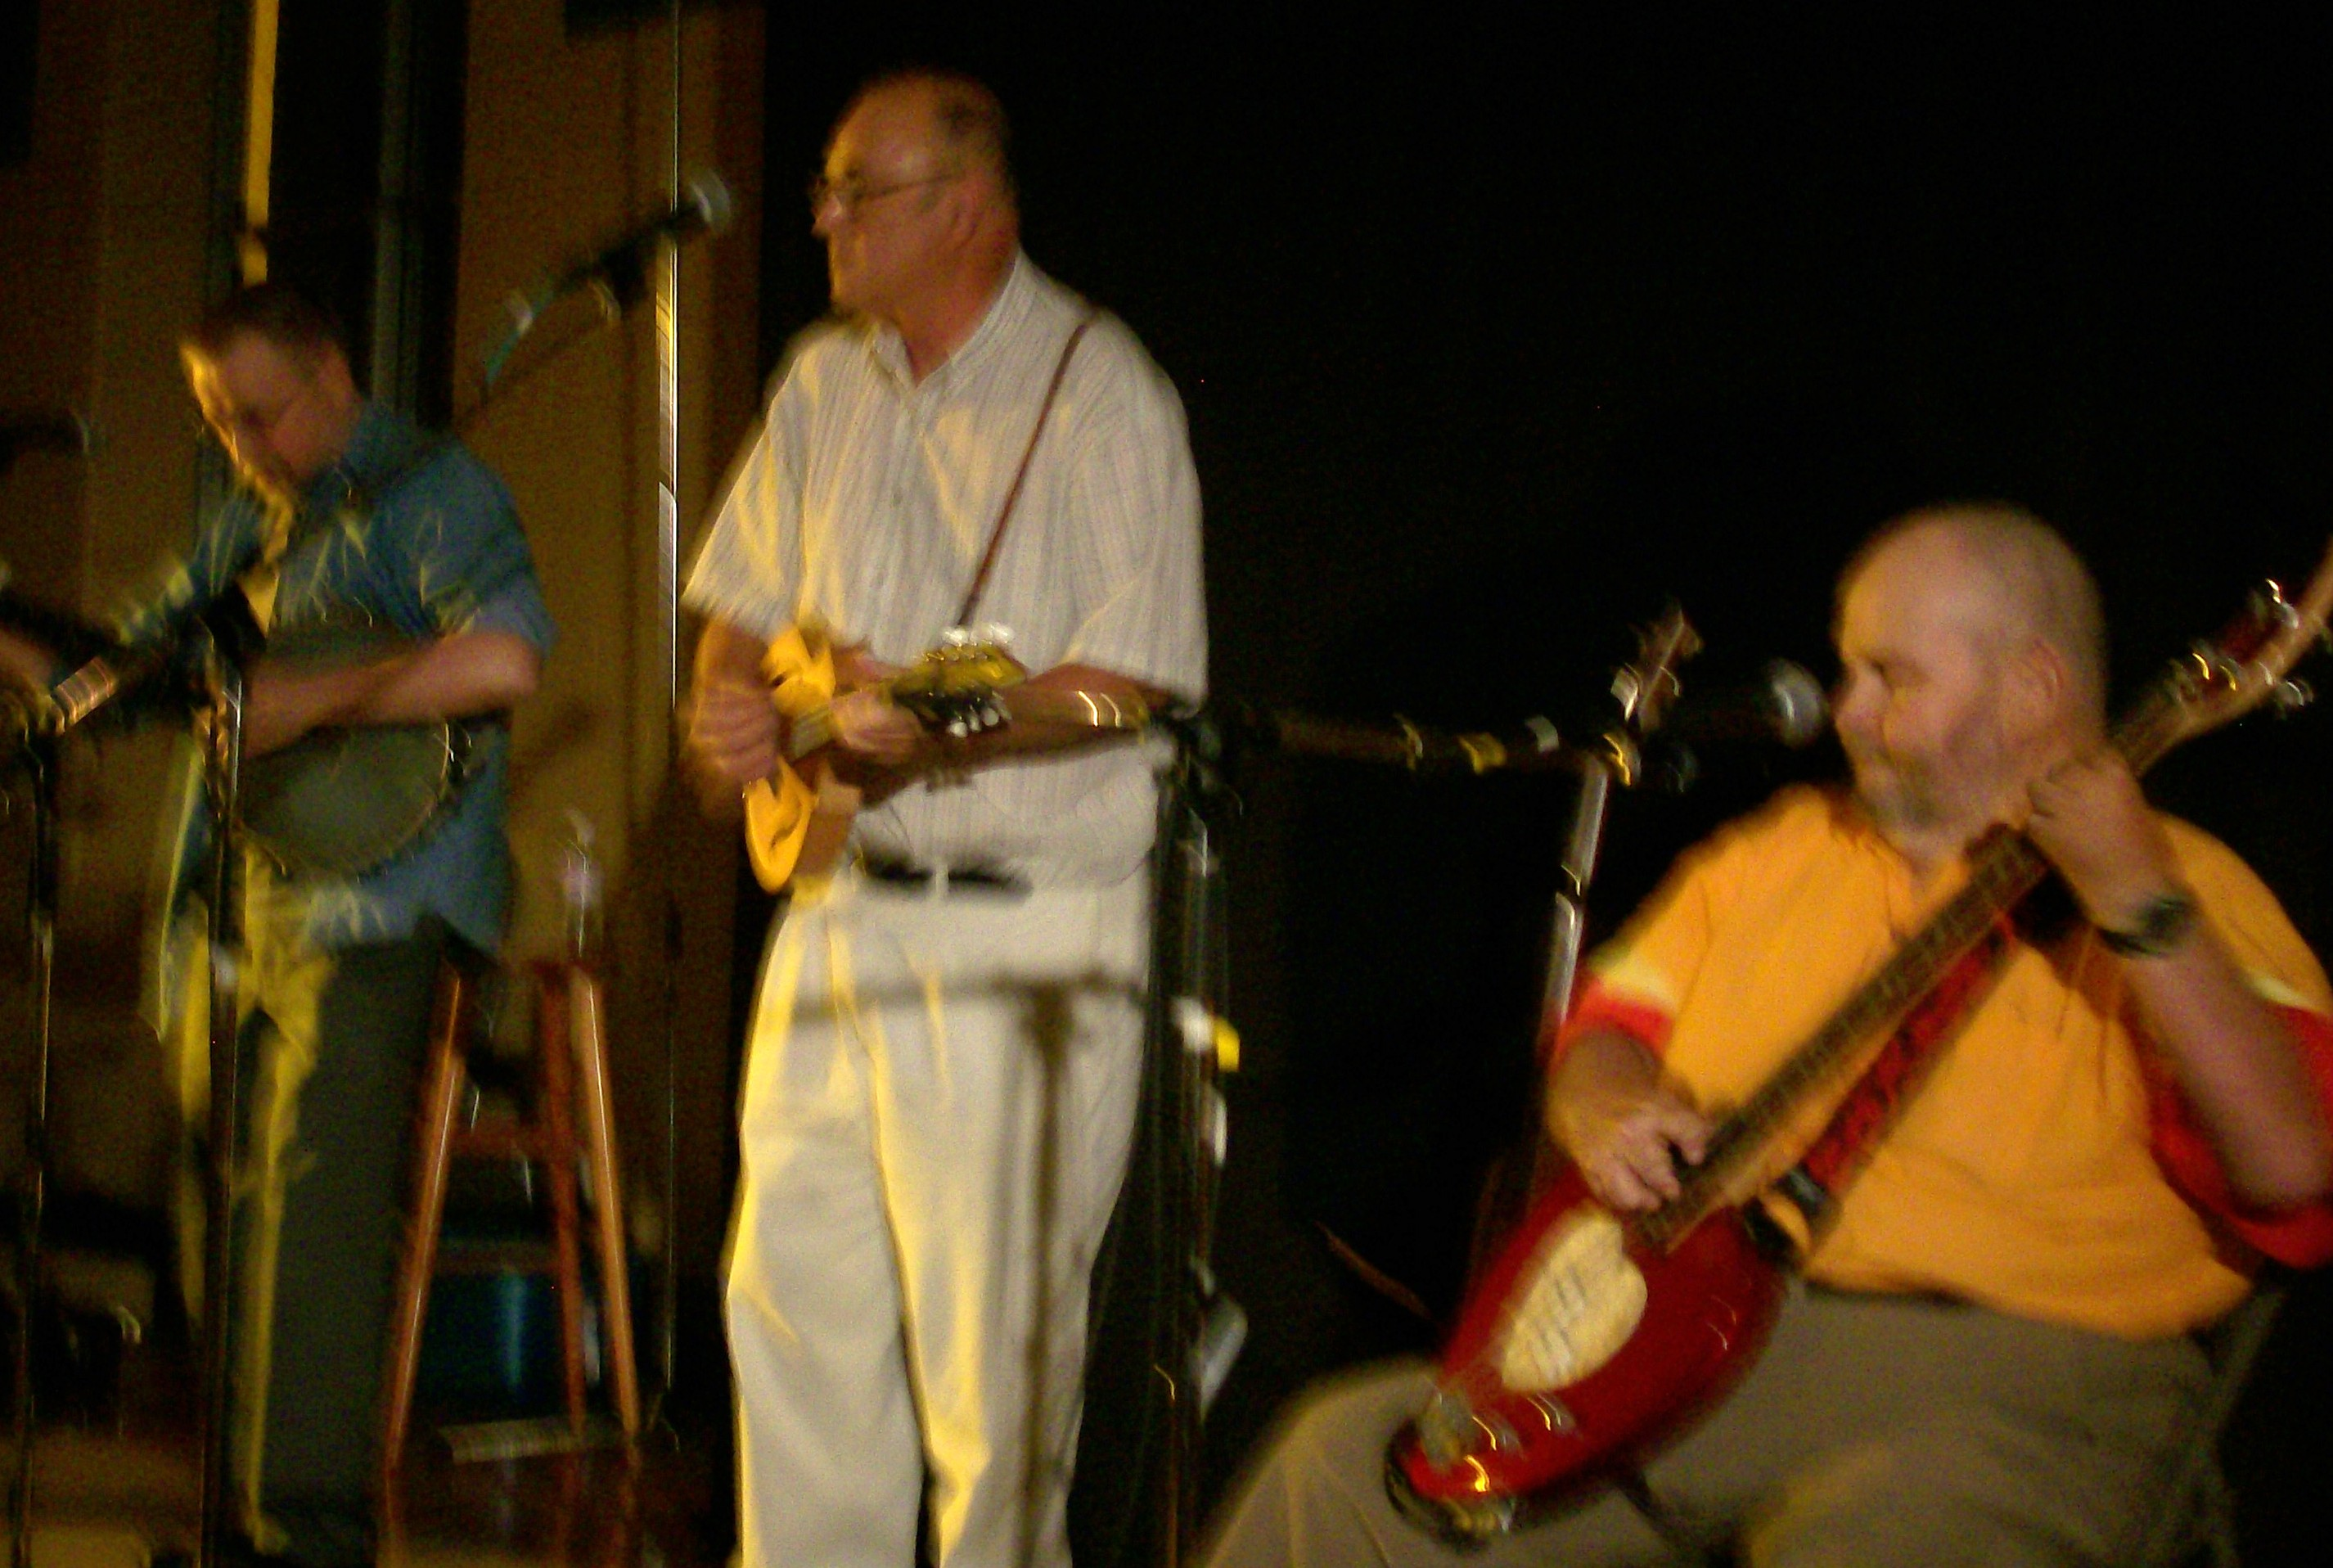 EZEDUZIT at the Black Walnut Folk Club September 21, 2007